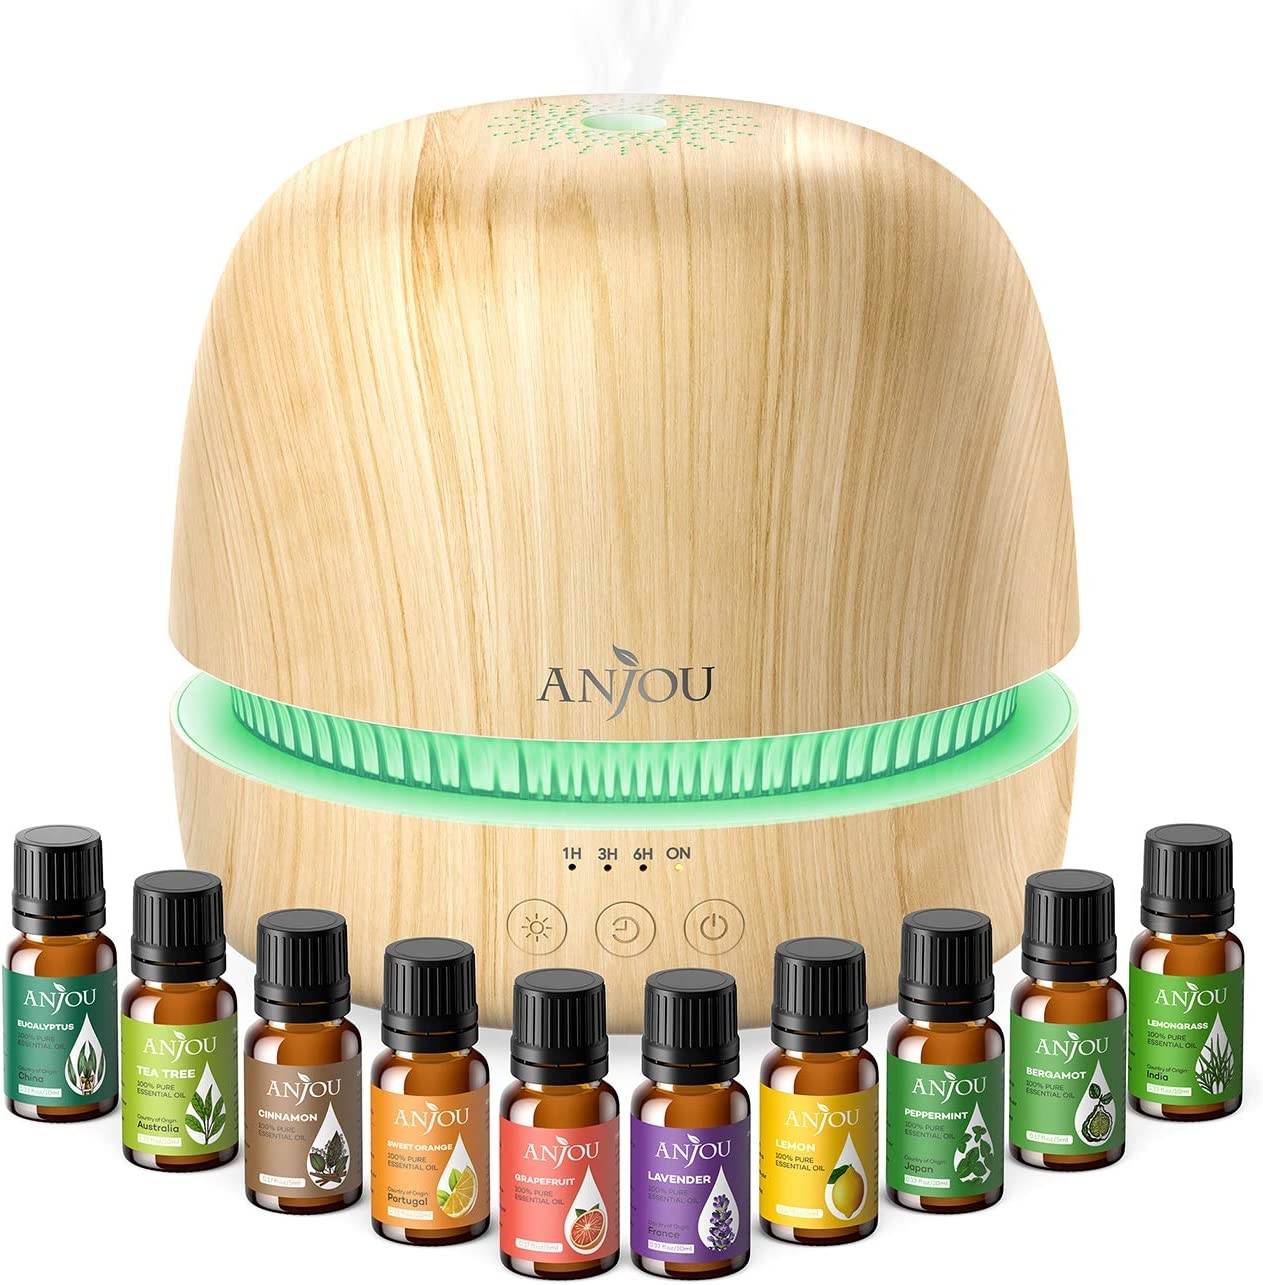 Essential Oil Diffuser Set - Anjou 300ml Ultrasonic Aromatherapy Diffuser with 10 Essential Oils Humidifiers for Constant Aromatherapy, 7 Color LED & Timer for Home Bedroom Office Study Yoga Spa